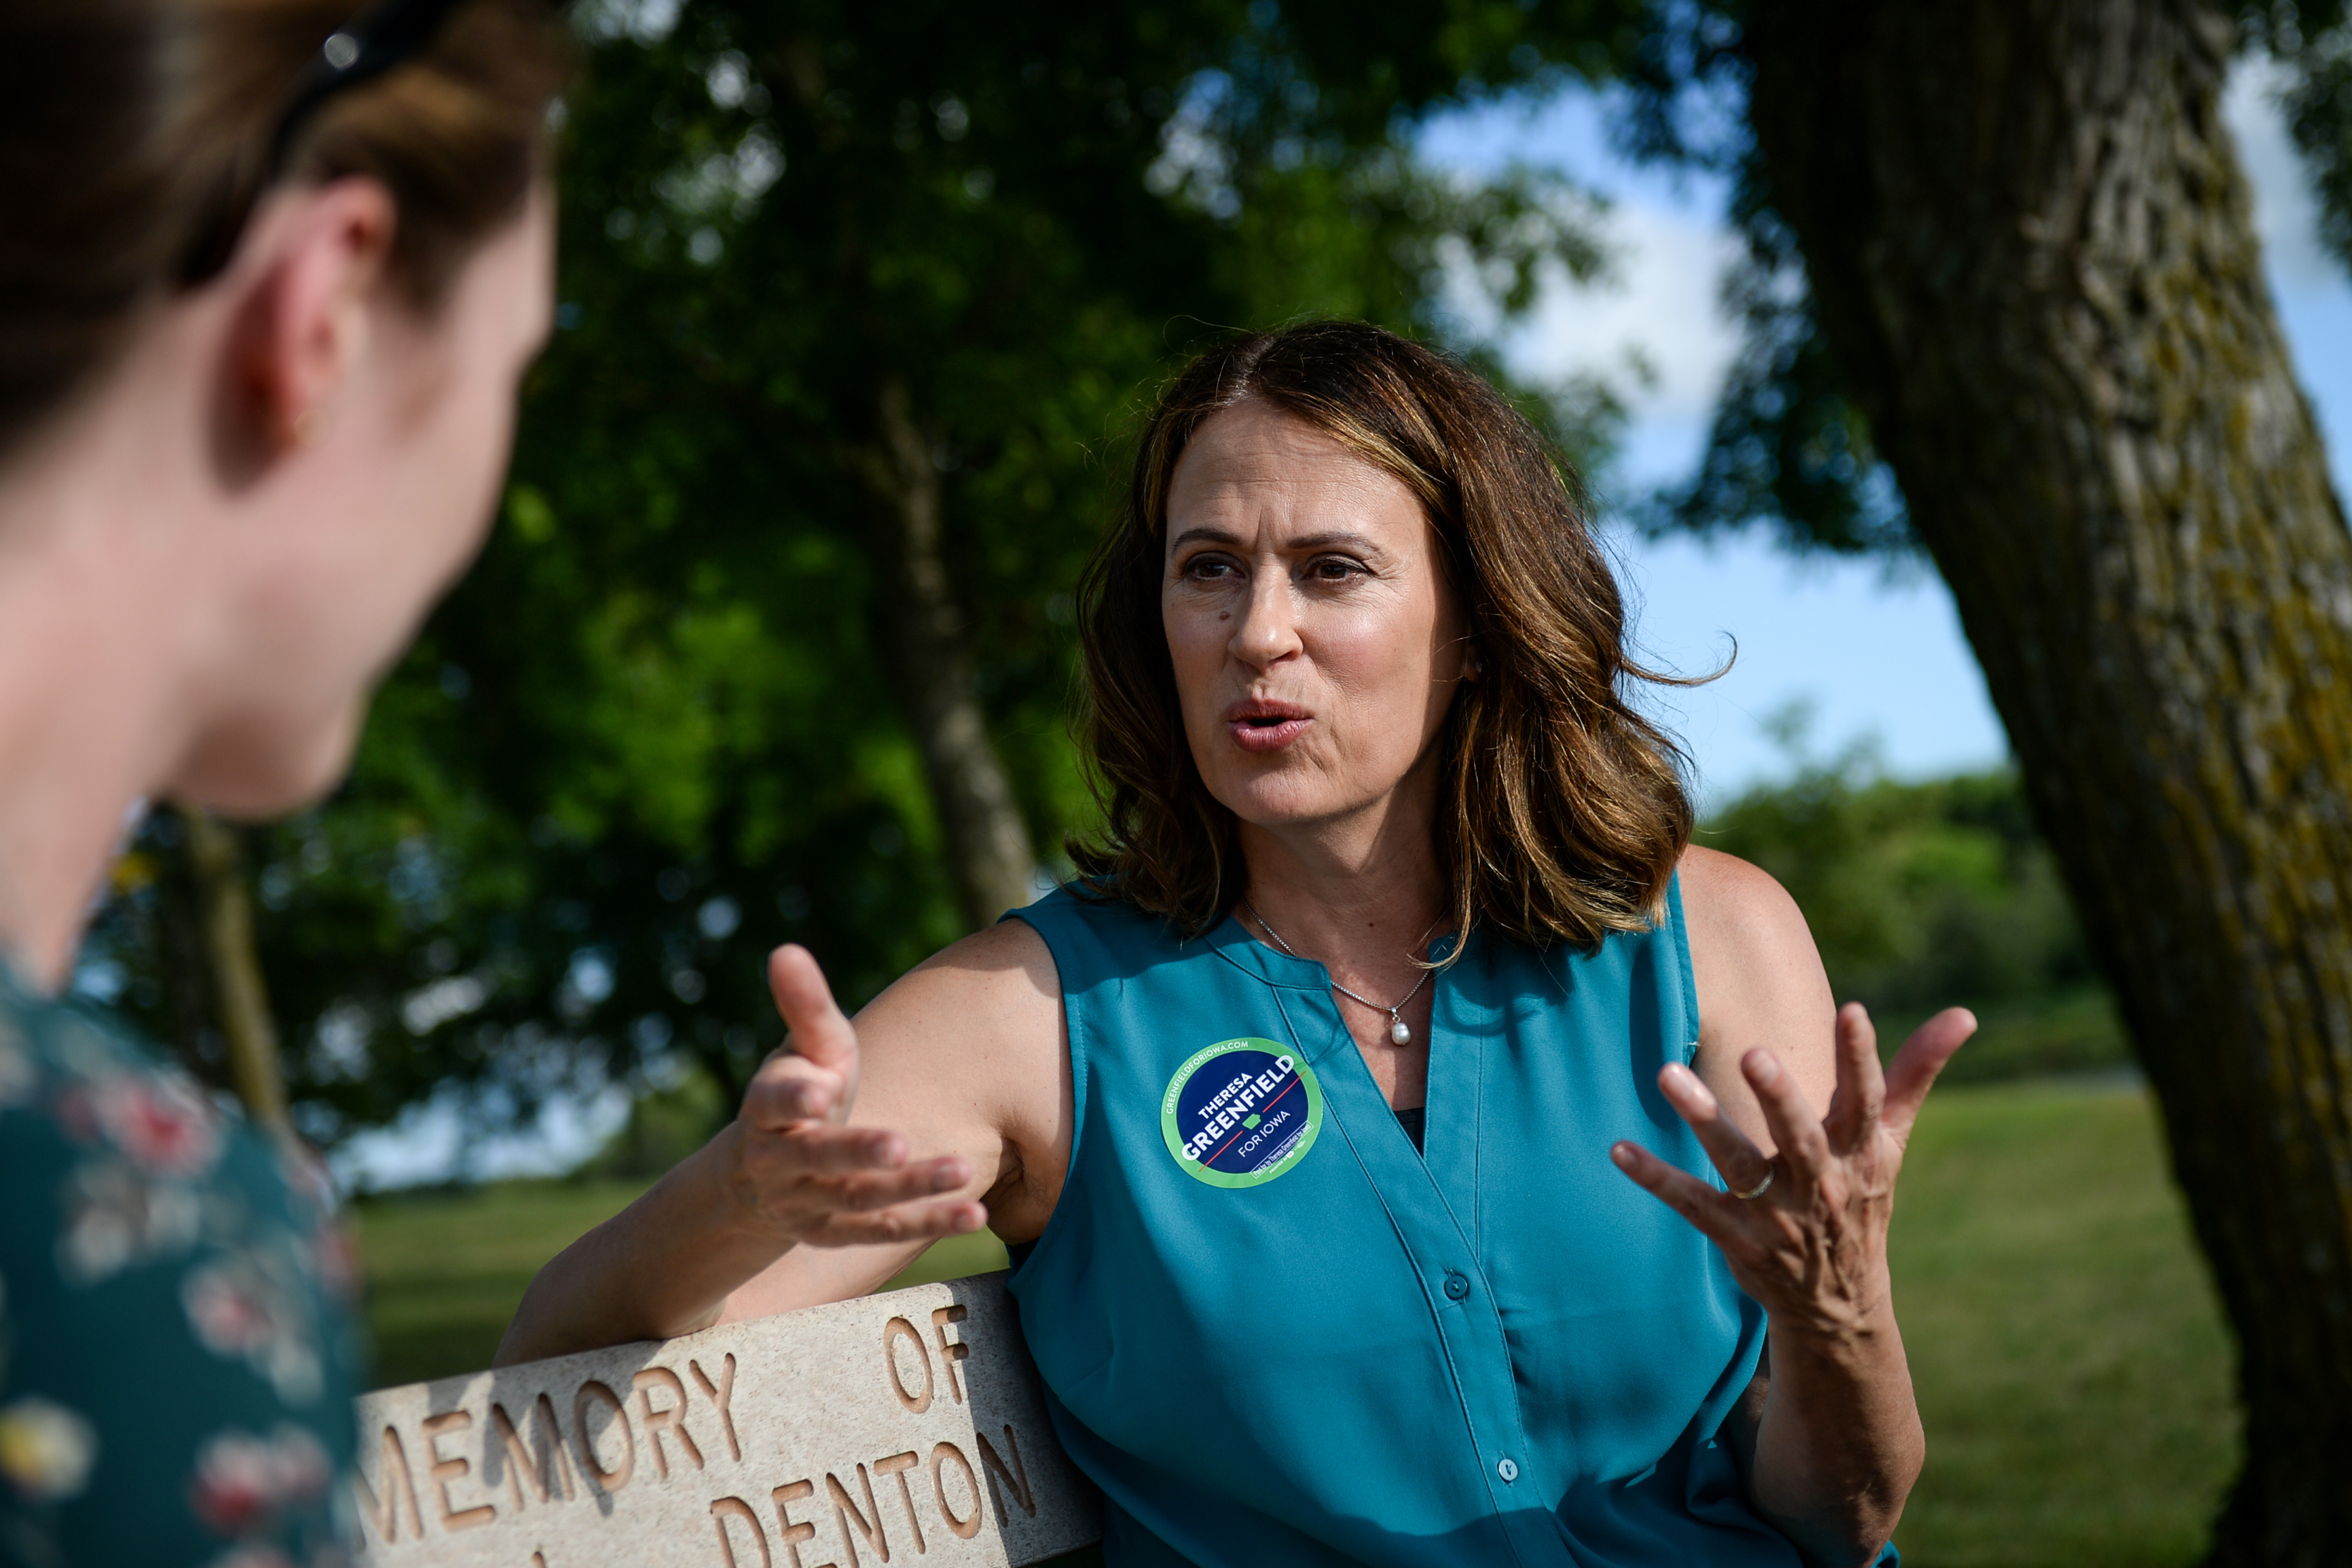 Democratic senate candidate Theresa Greenfield speaks with a reporter at a picnic hosted by the Adair County Democrats in Greenfield, Iowa on Sunday August 11, 2019.